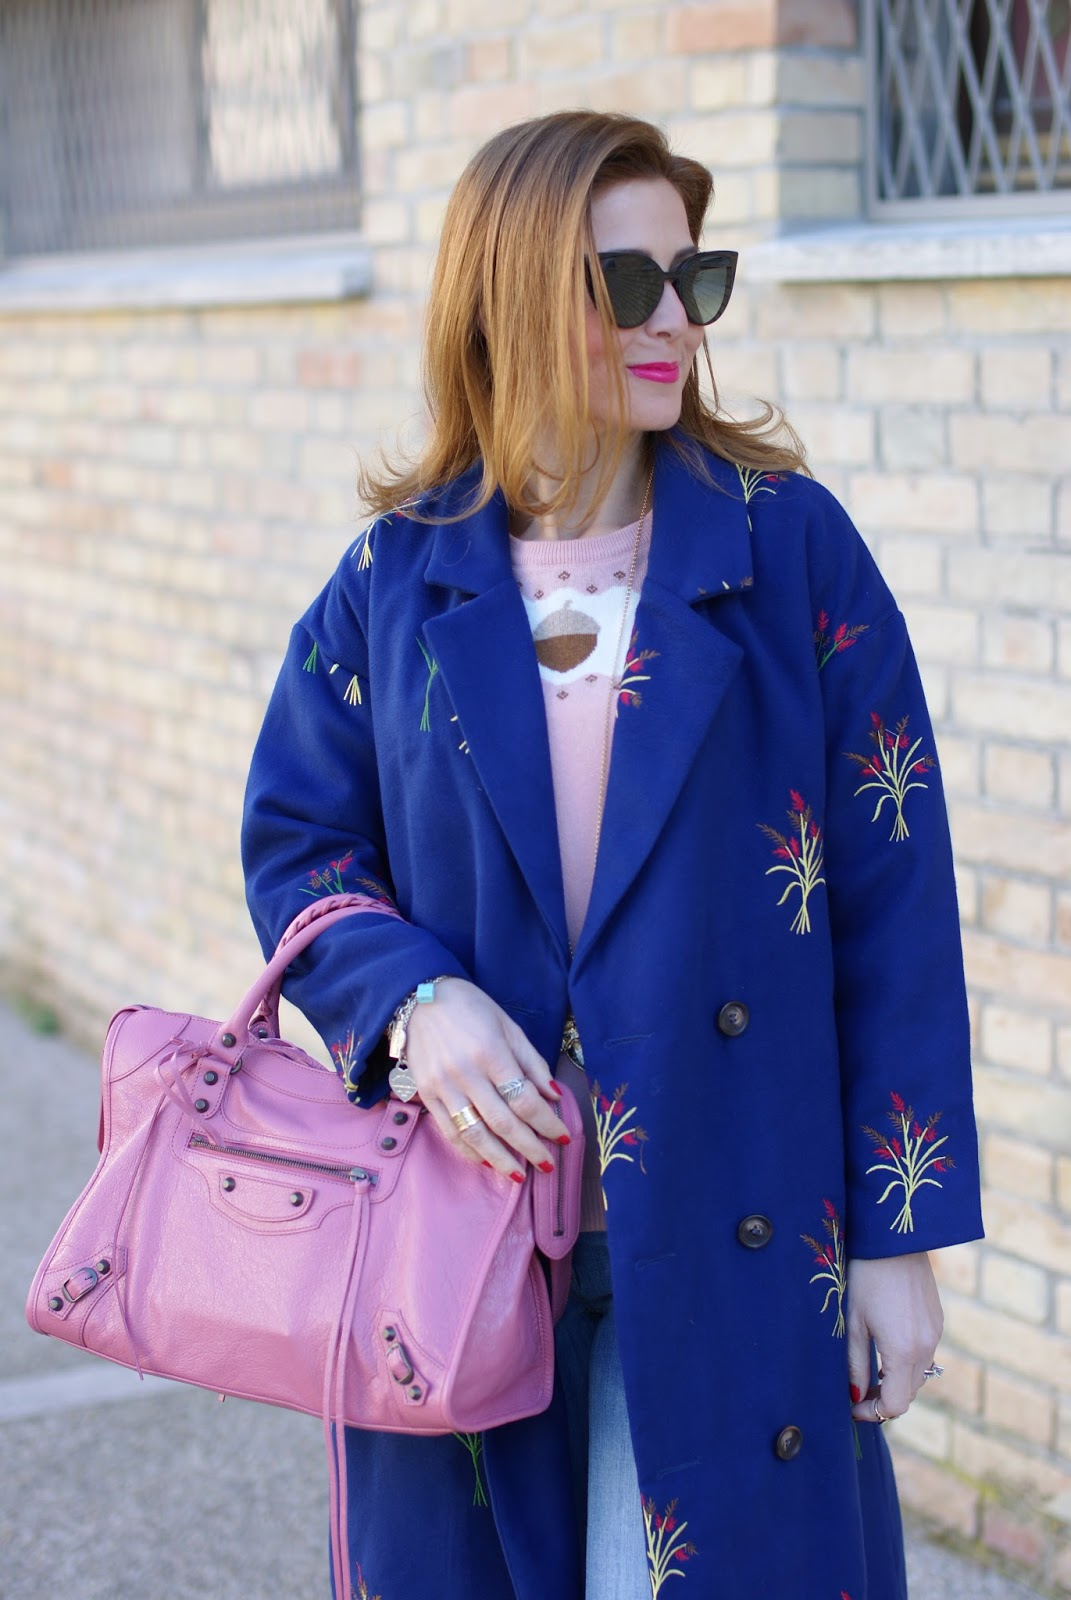 Balenciaga Rose Hortensia bag, floral embroidered Zaful coat on Fashion and Cookies fashion blog, fashion blogger style